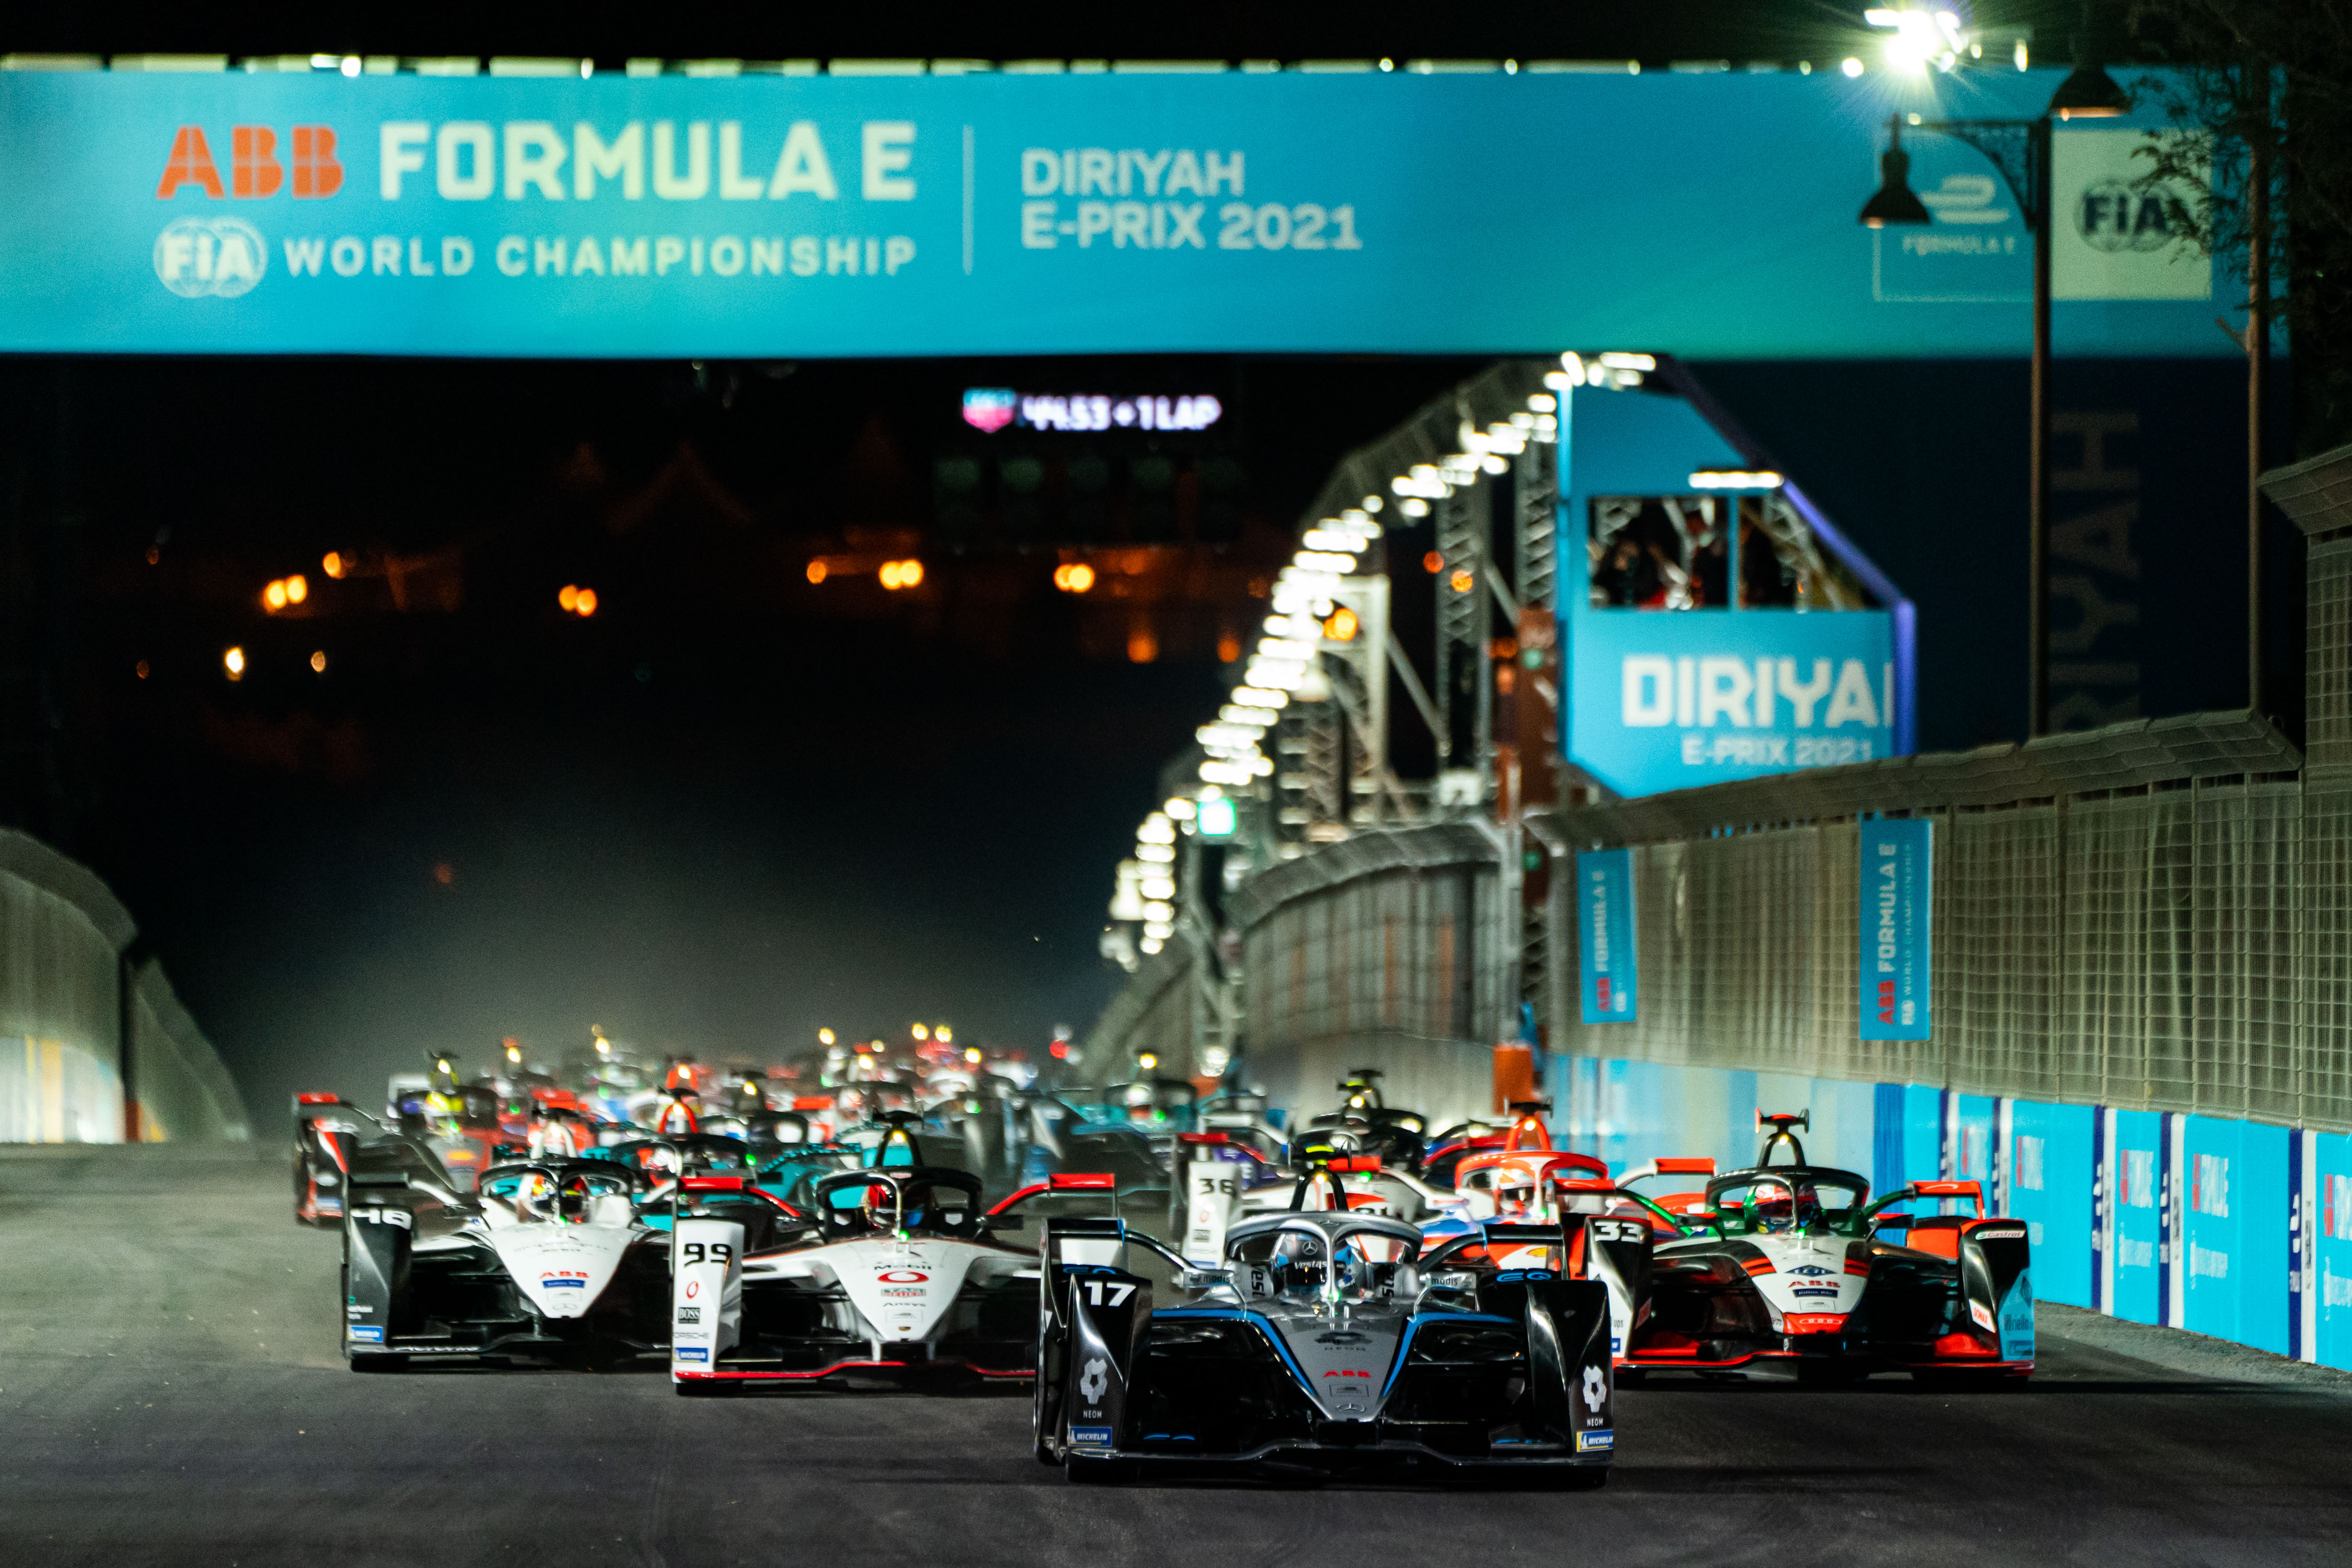 The MICHELIN Pilot Sport EV plays central role as maiden Formula E campaign as a world championship gets off to a flying start